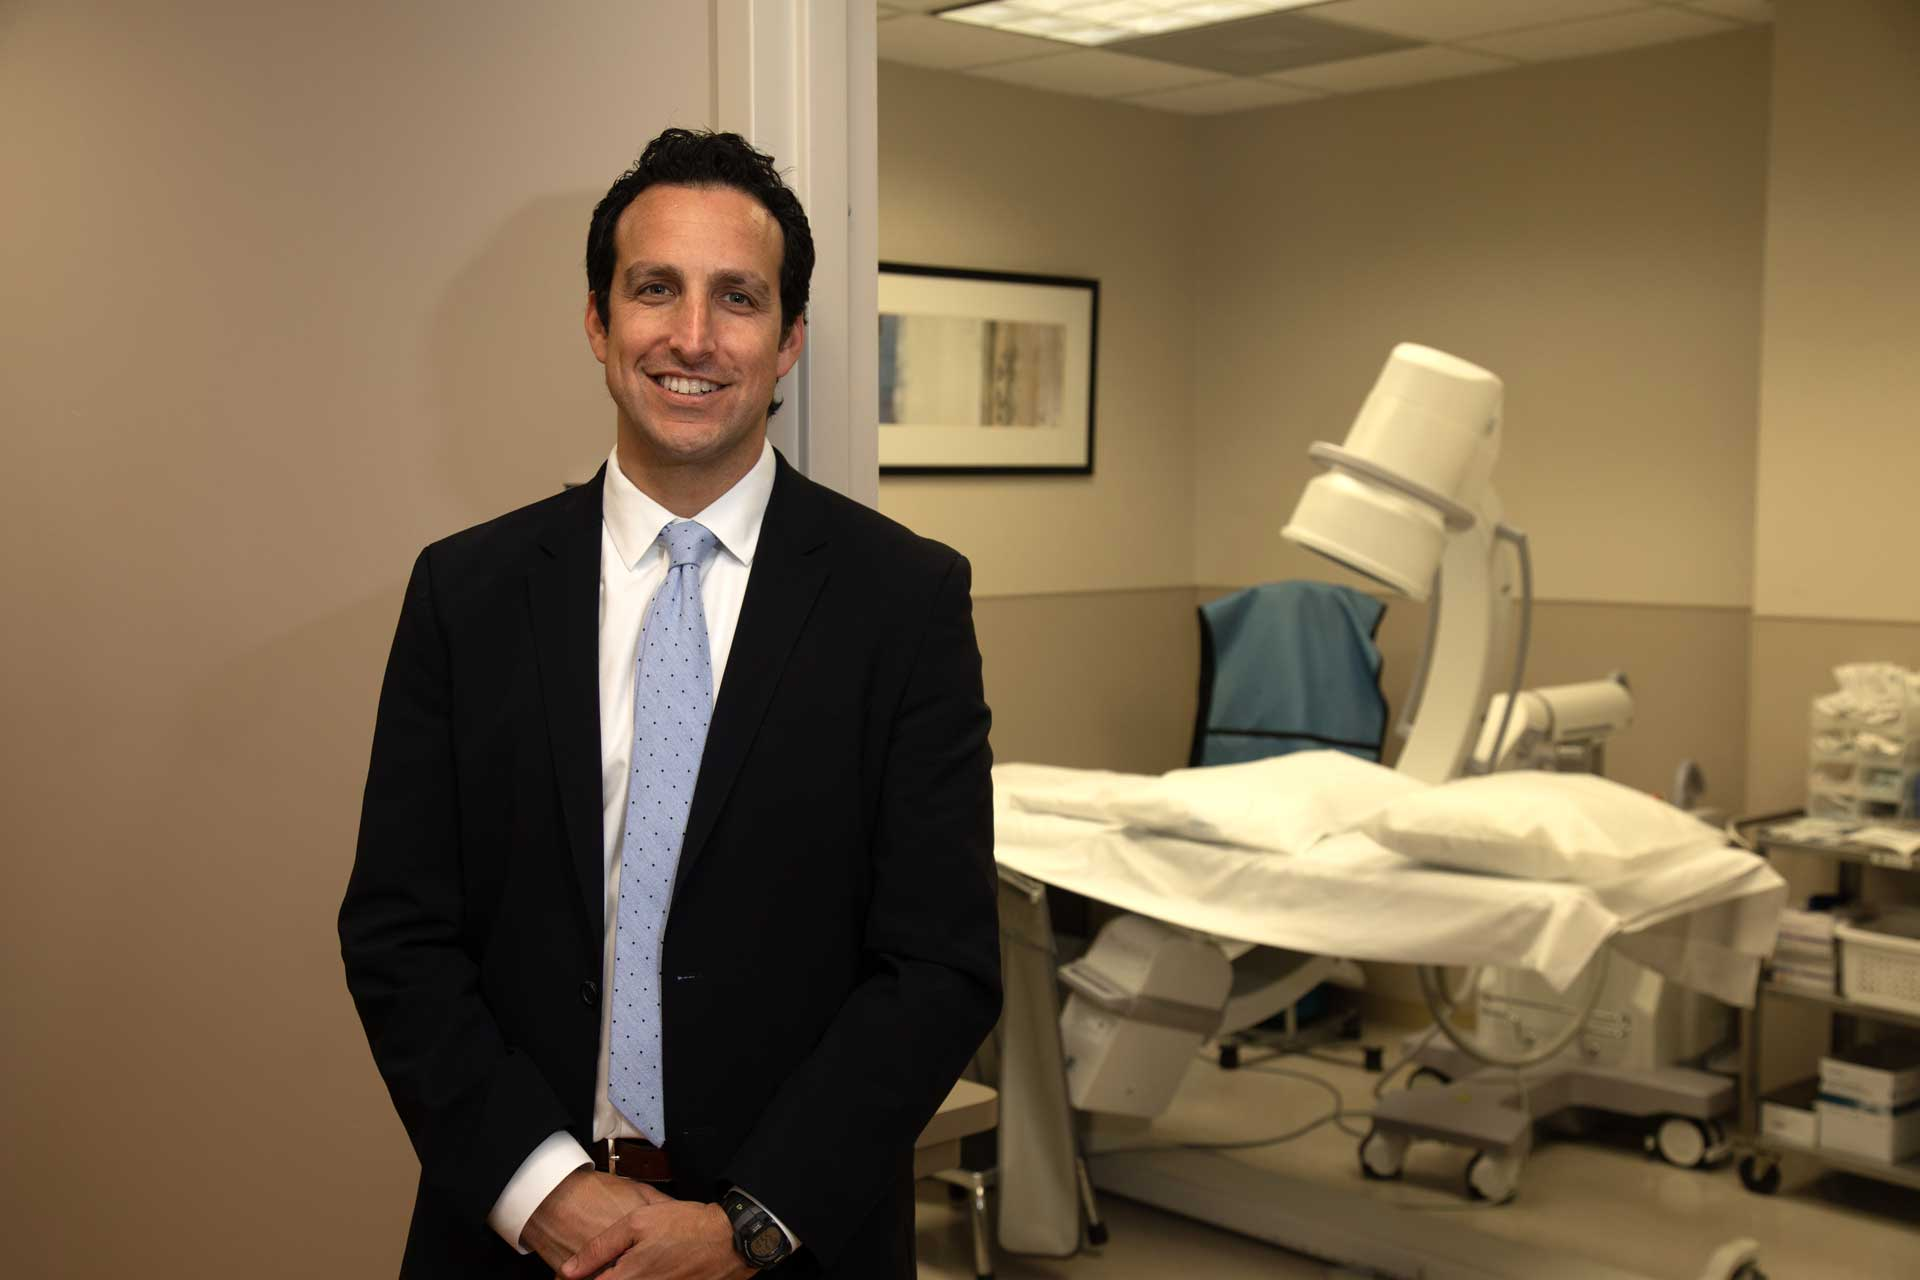 NJ Spine Dr. Gerstman